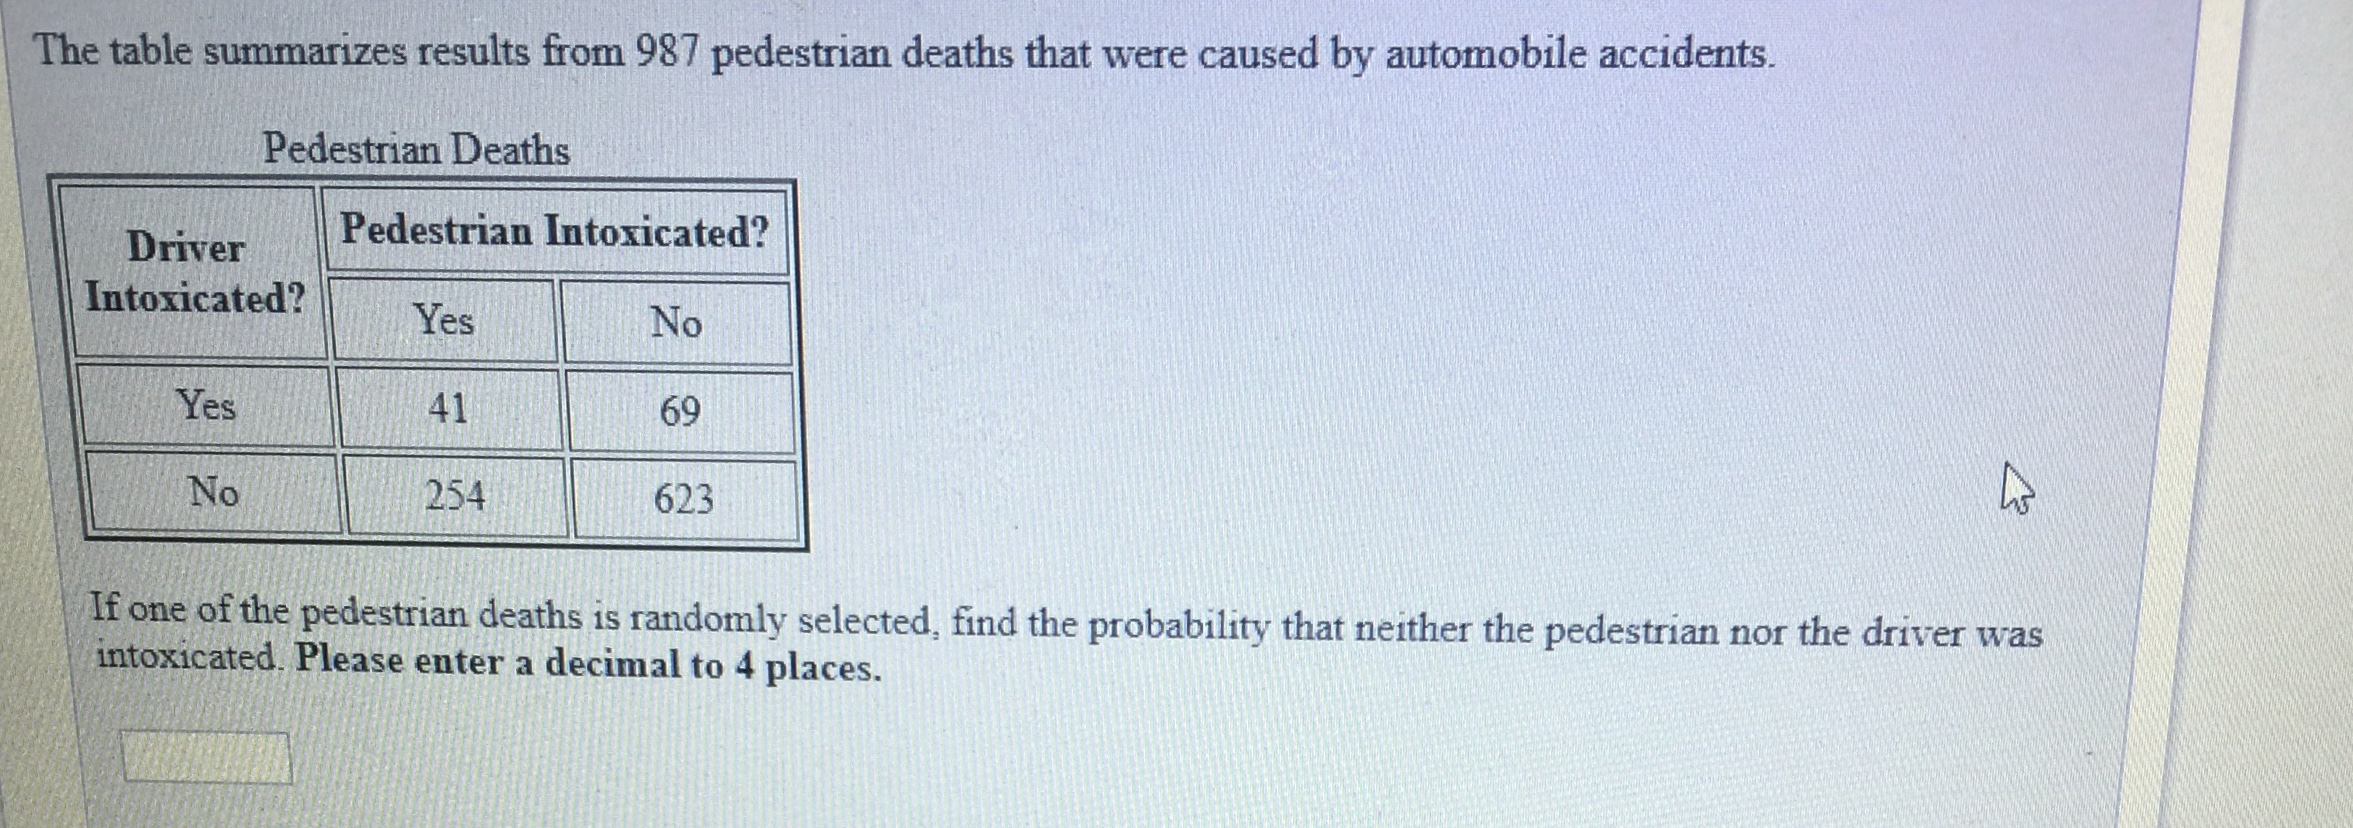 The table summarizes results from 987 pedestrian deaths that were caused by automobile accidents. Pedestrian Deaths Pedestrian Intoxicated? Driver Intoxicated?YesNo Yes 41 69 No 254 623 If one of the pedestrian deaths is randomly selected, find the probability that neither the pedestrian nor the driver was intoxicated. Please enter a decimal to 4 places